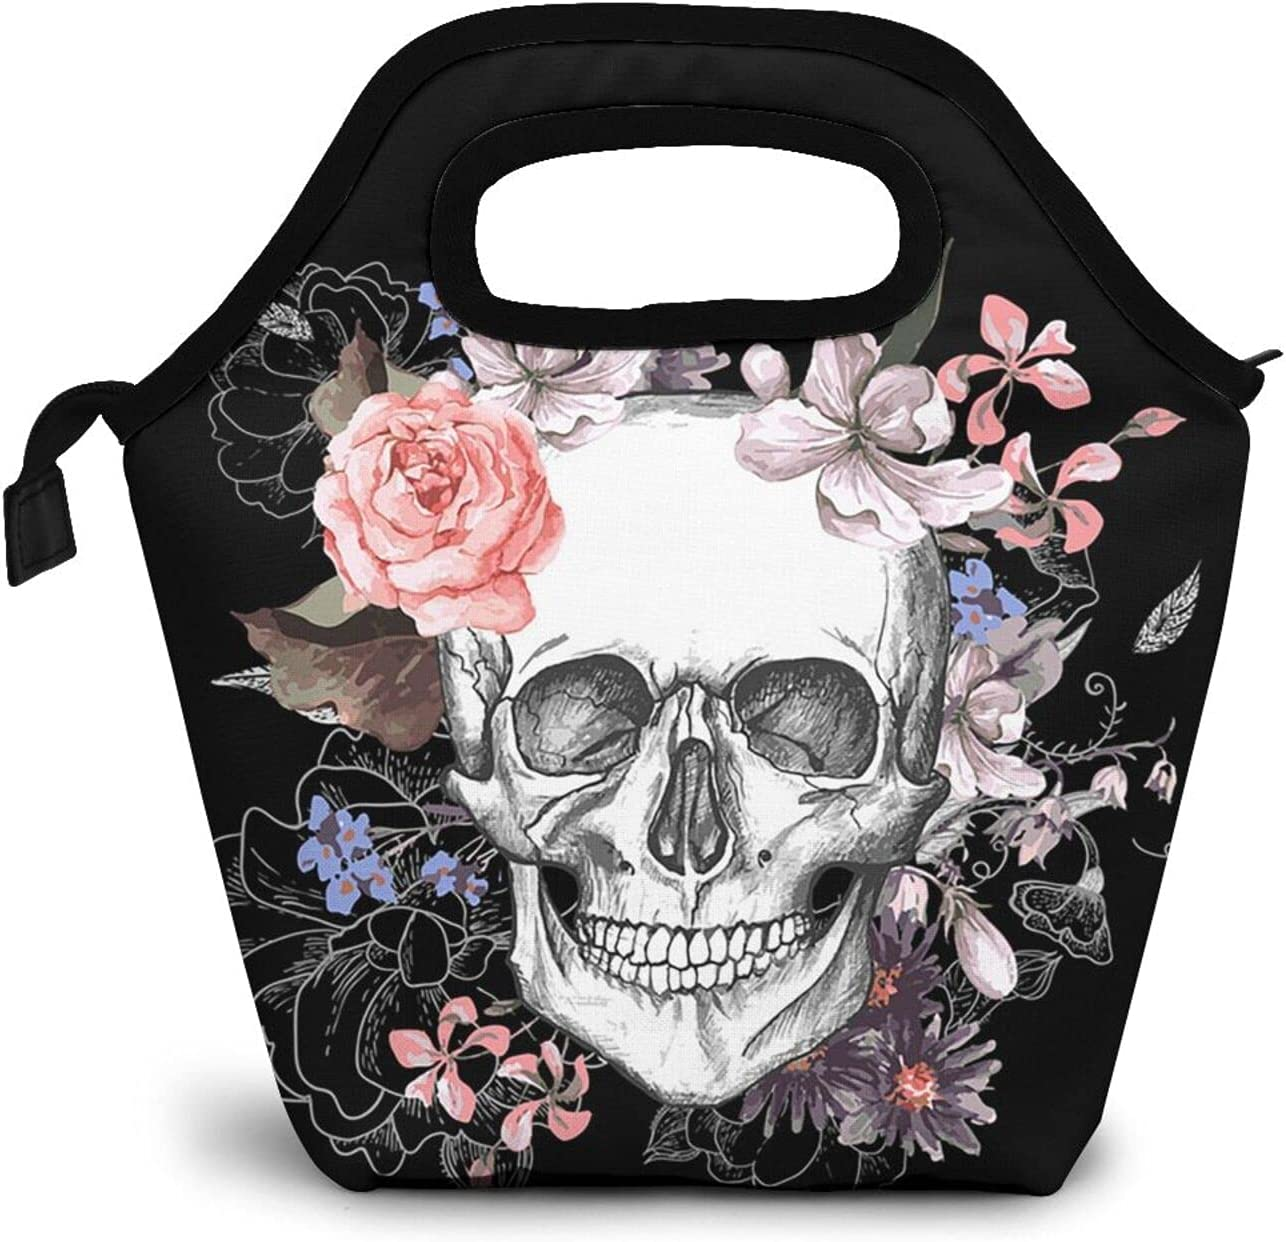 Halloween Sugar Skull Lunch Bag for Women Reusable Insulated Lunch Box, Portable Tote Bag for Women Nurse Office Worker